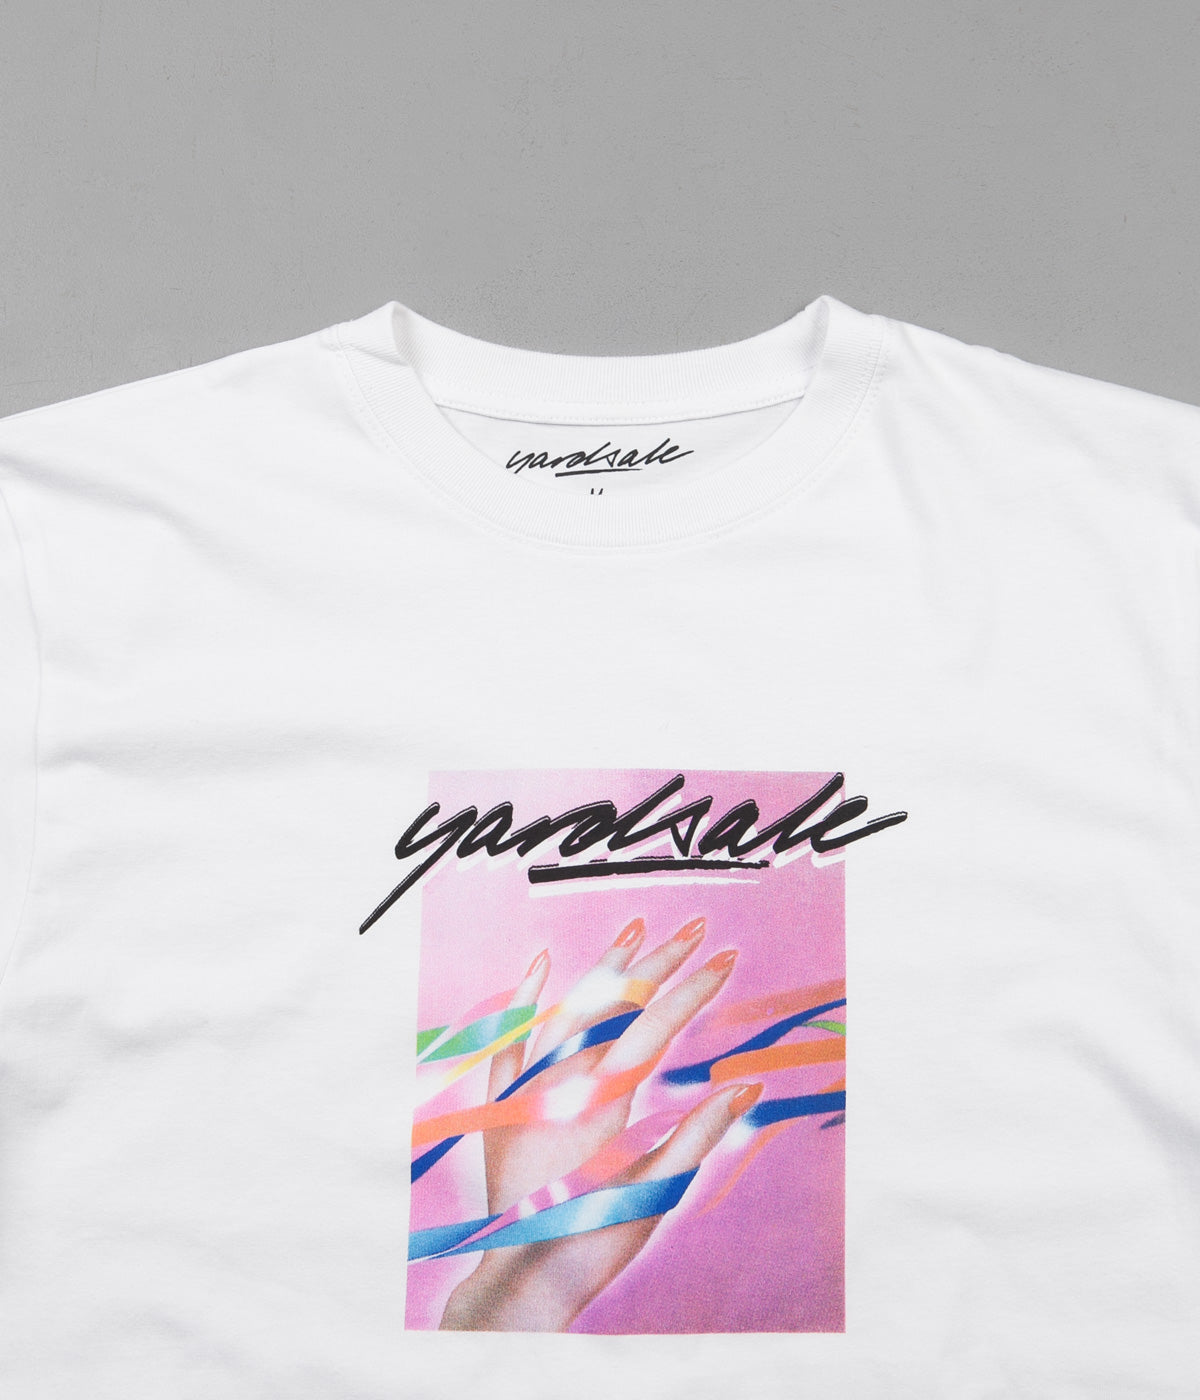 Yardsale Blush T-Shirt - White